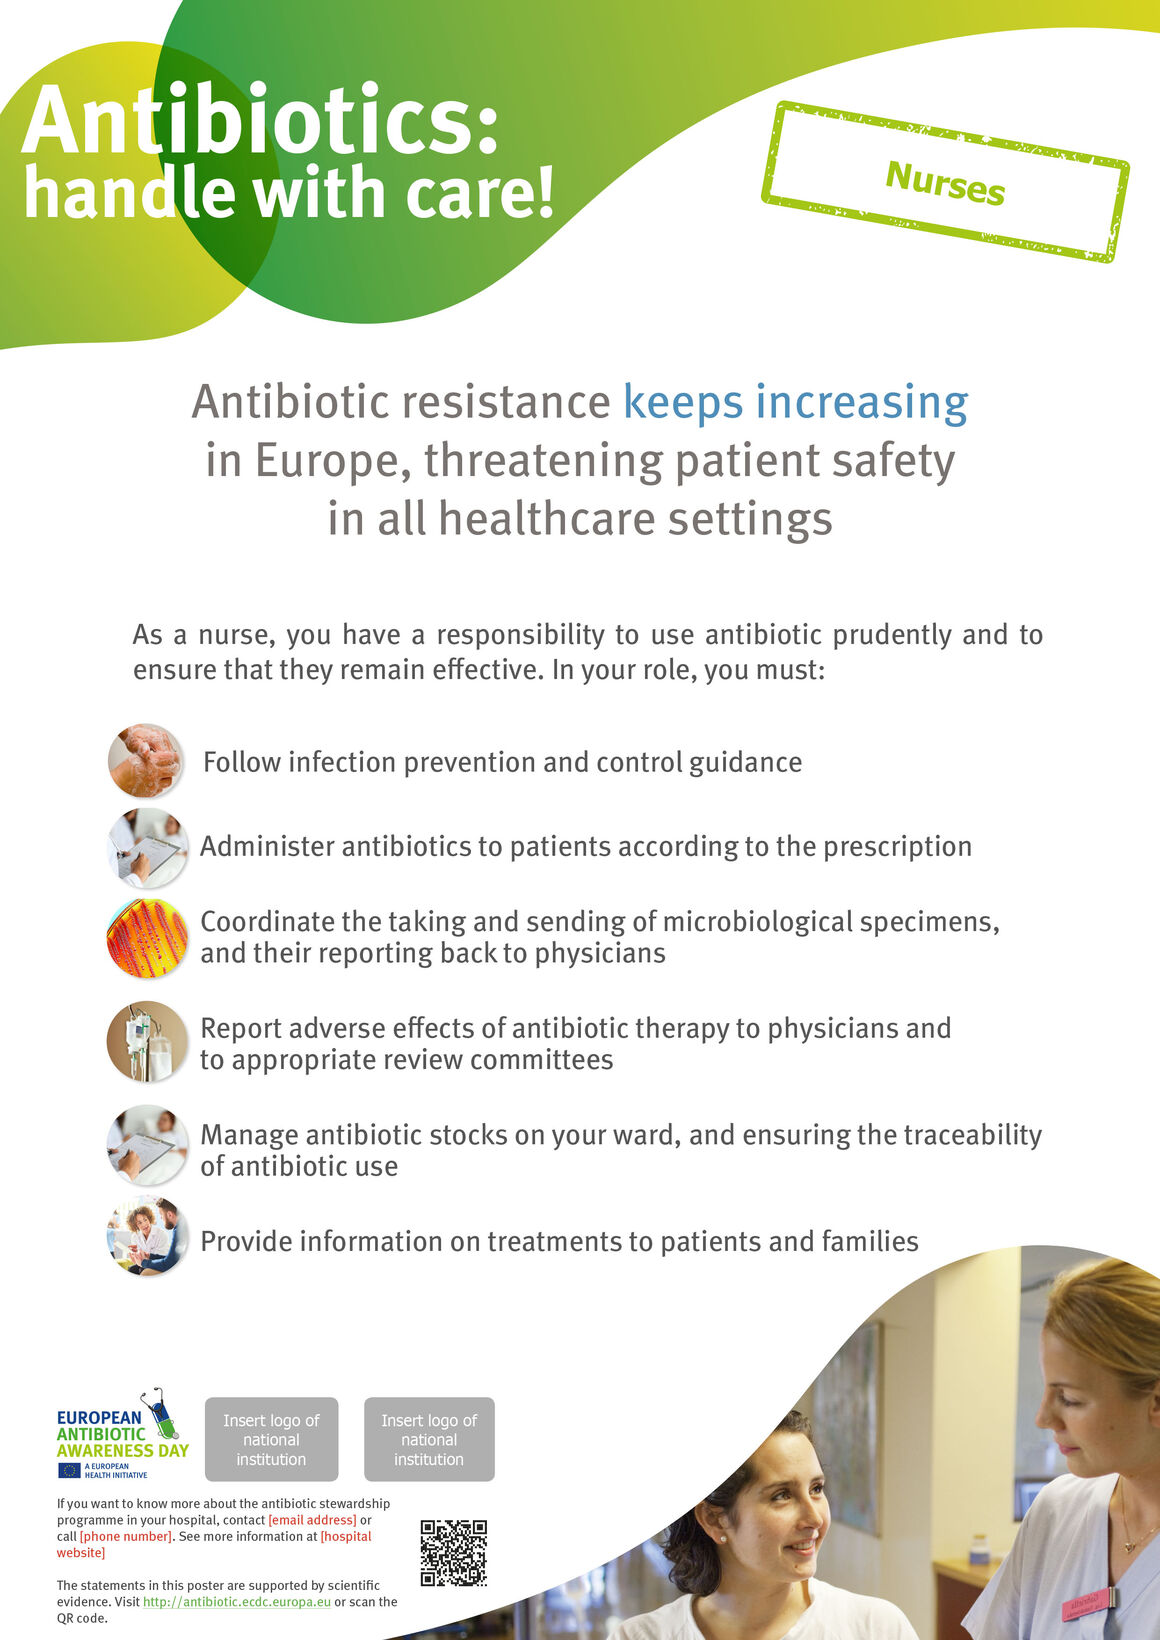 Poster for nurses in hospitals and healthcare settings: Things to do to keep antibiotics working.